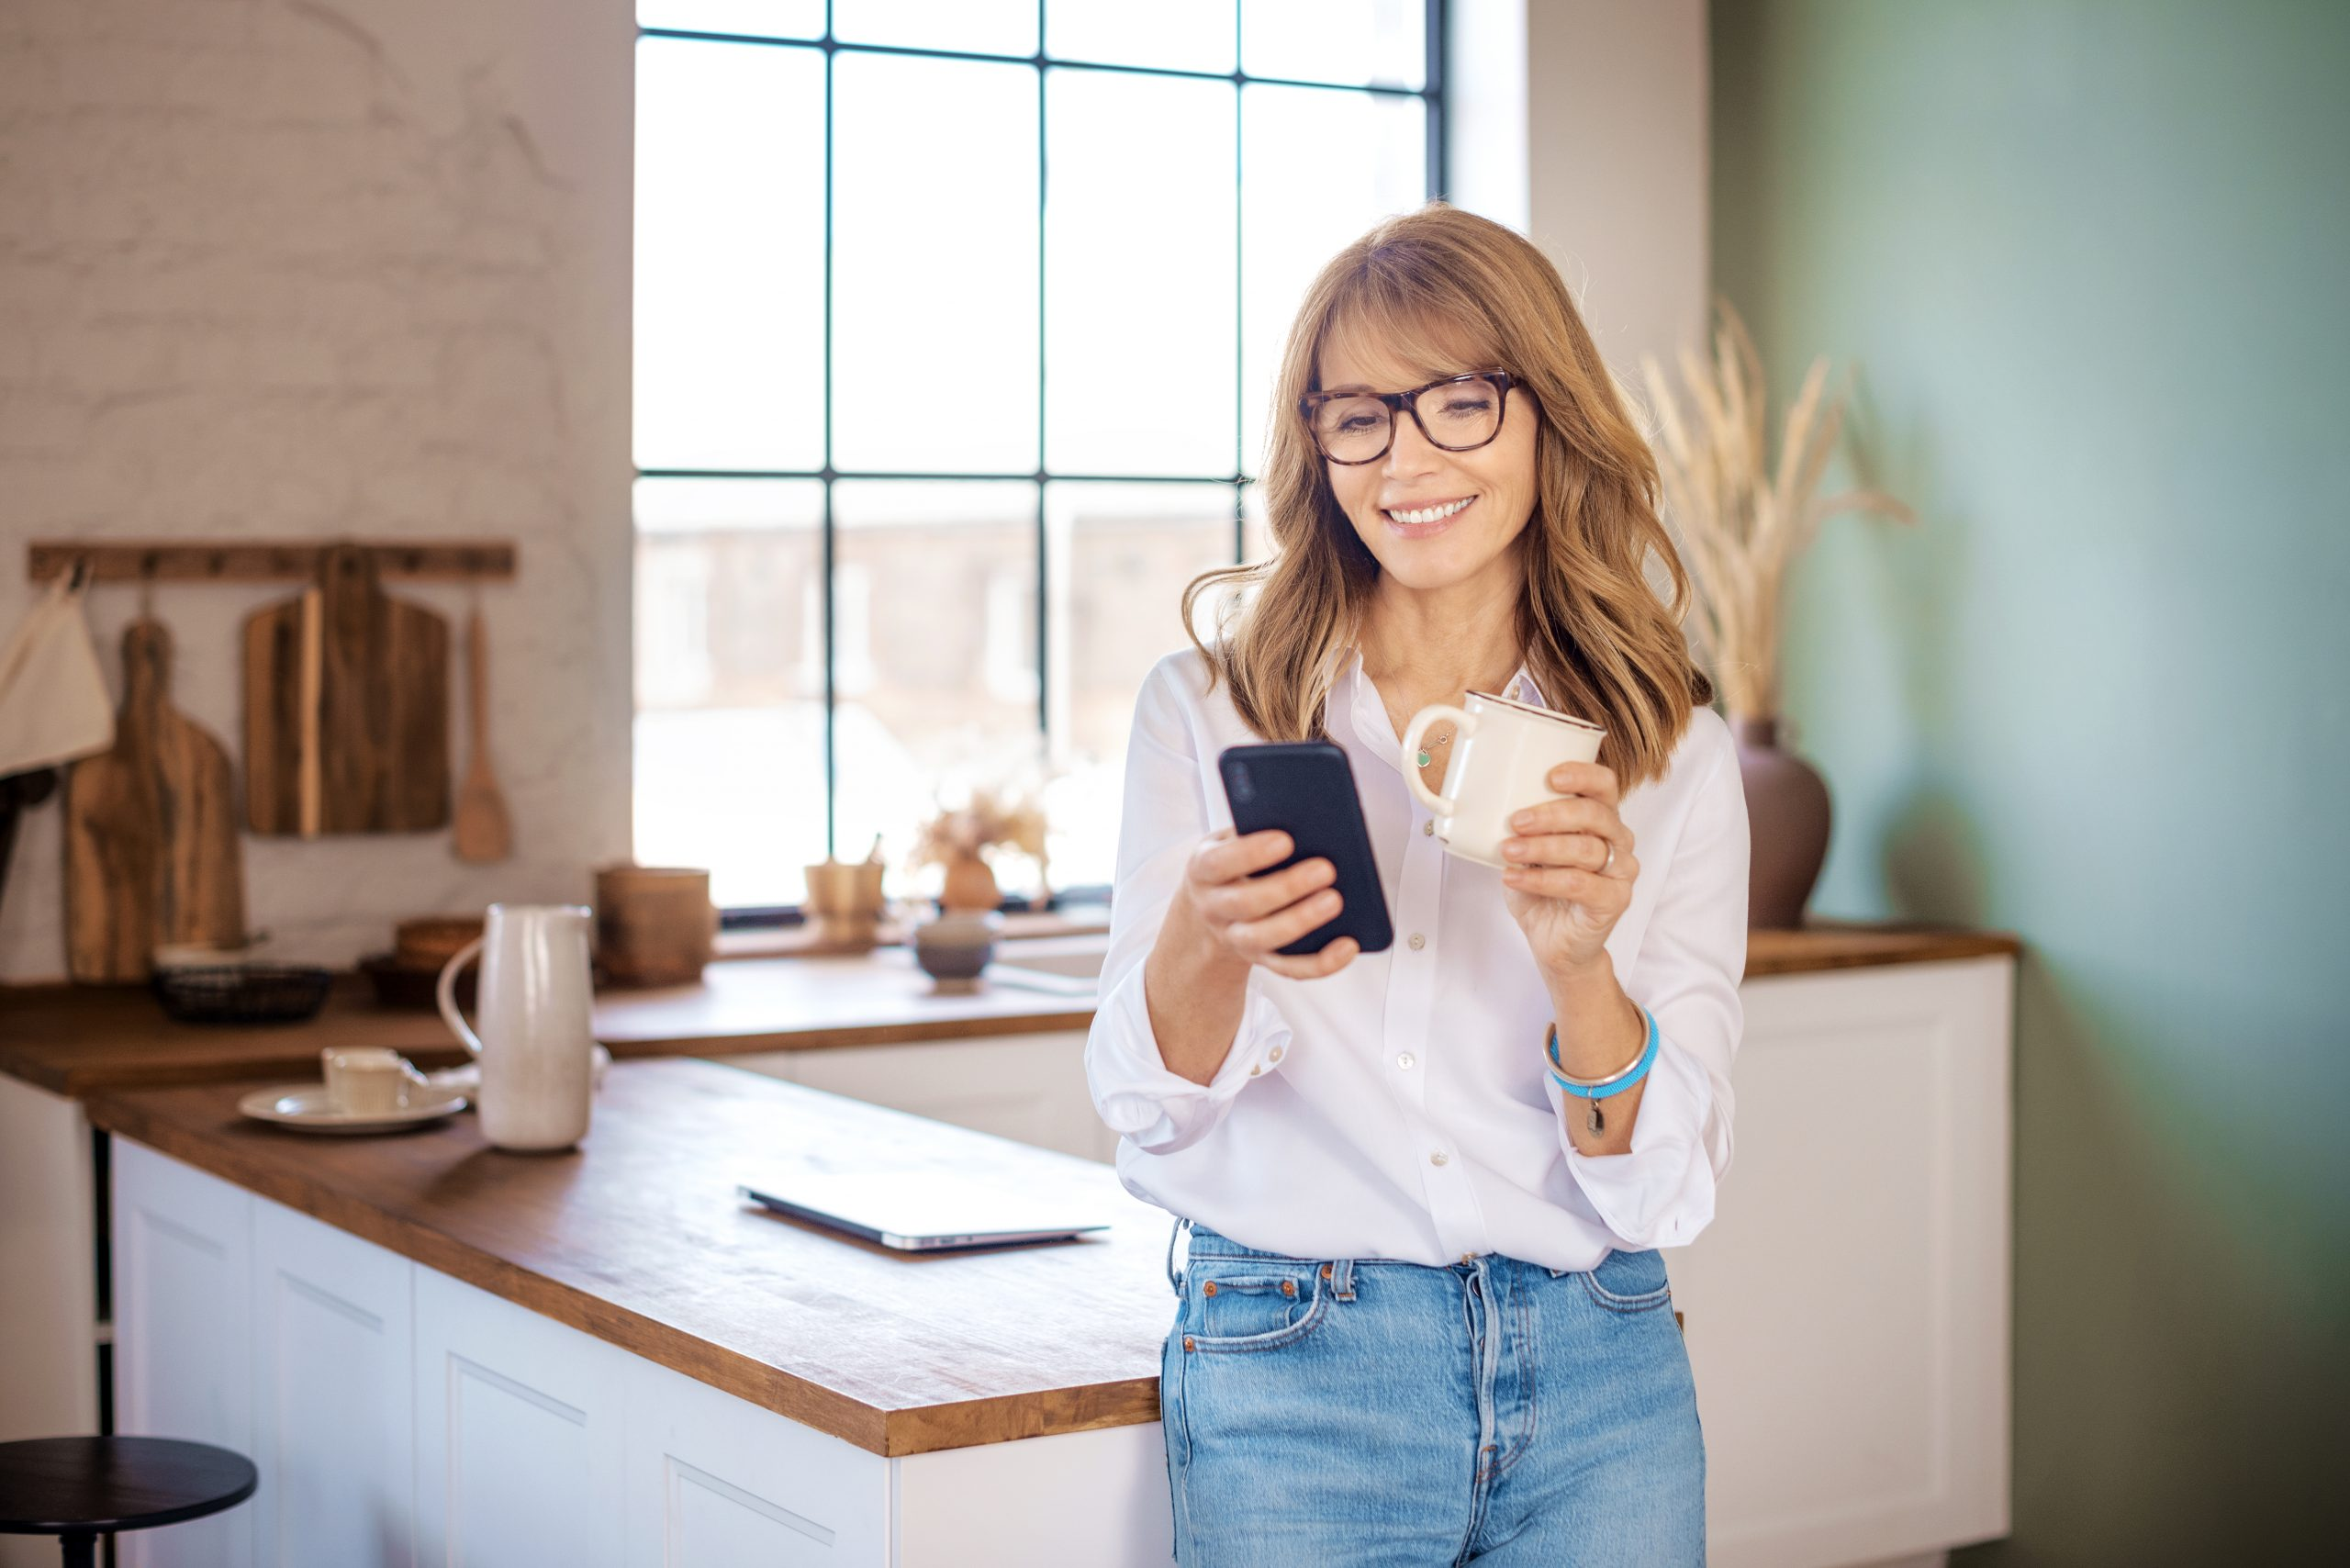 Smiling woman looking at cellphone and drinking coffee while standing at her kitchen in the morning